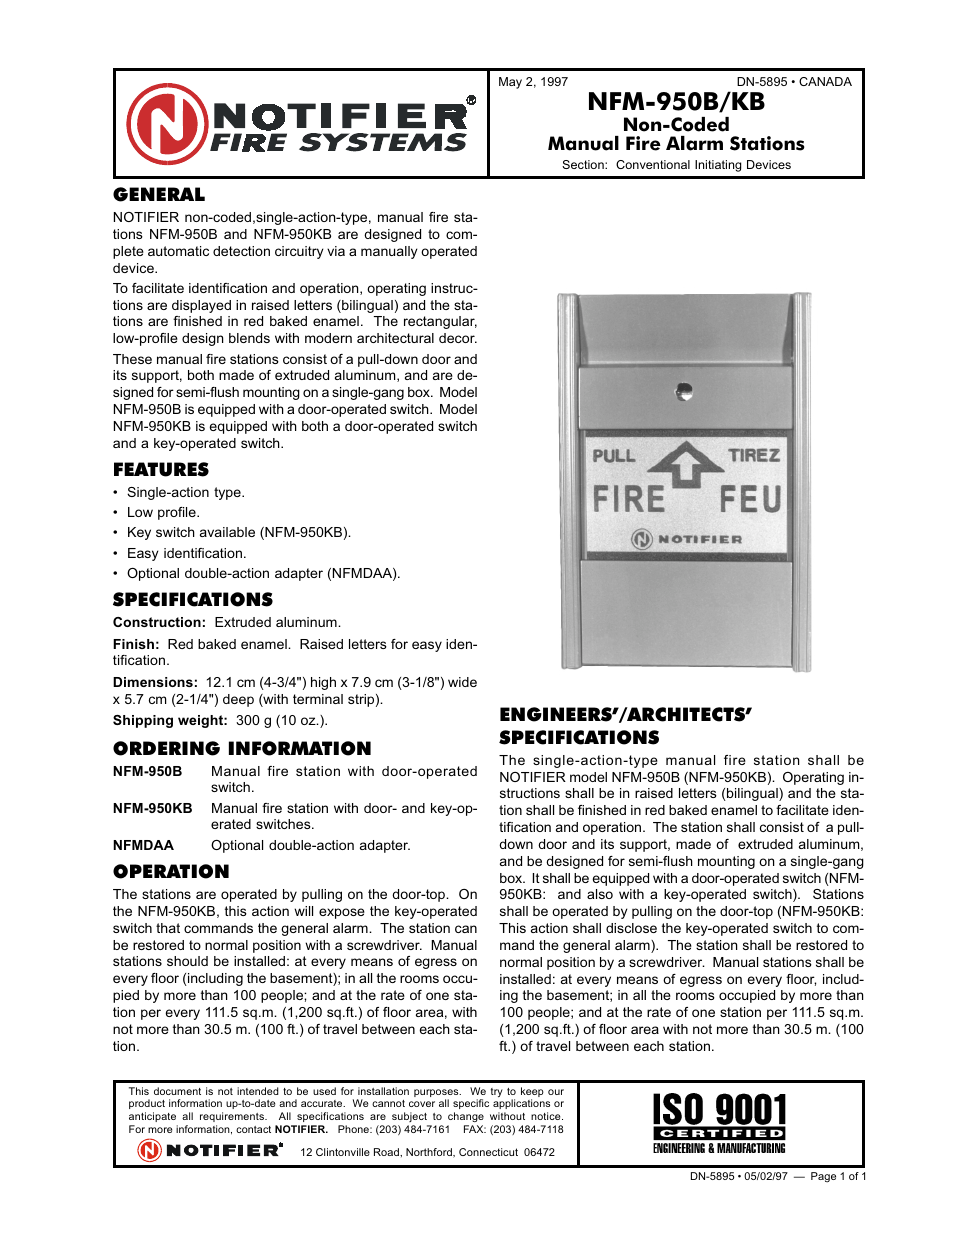 Notifier NFM-950B/KB User Manual | 1 page